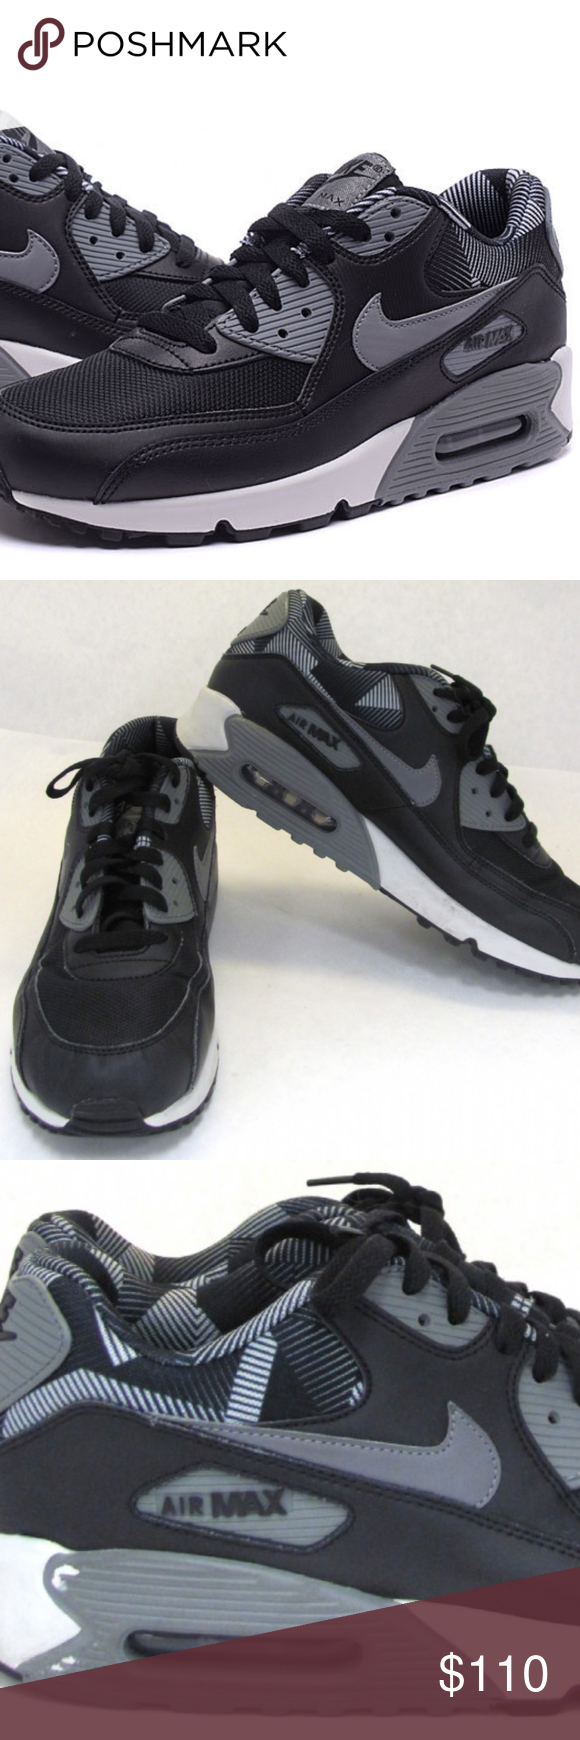 buy online 49816 77943 Nike Air Max 90 Sneakers Great preowned condition Nike Air Max 90 Print For Men  Black Cool Grey Pure Platinum Sneakers in size 10.5. Nike Shoes Sneakers